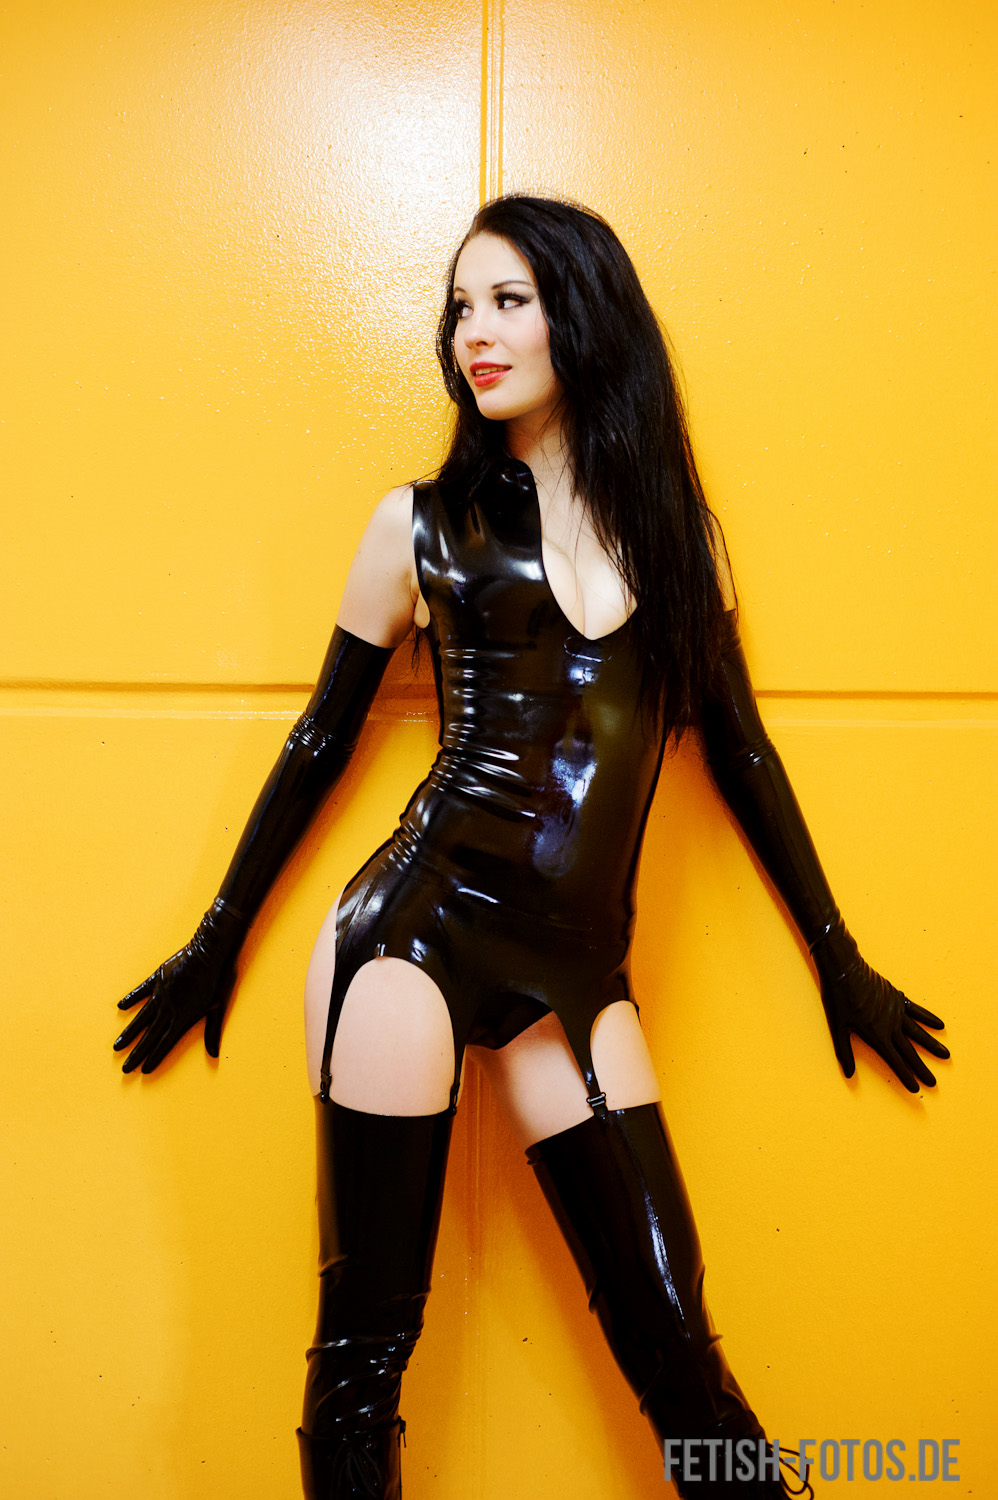 First time in latex